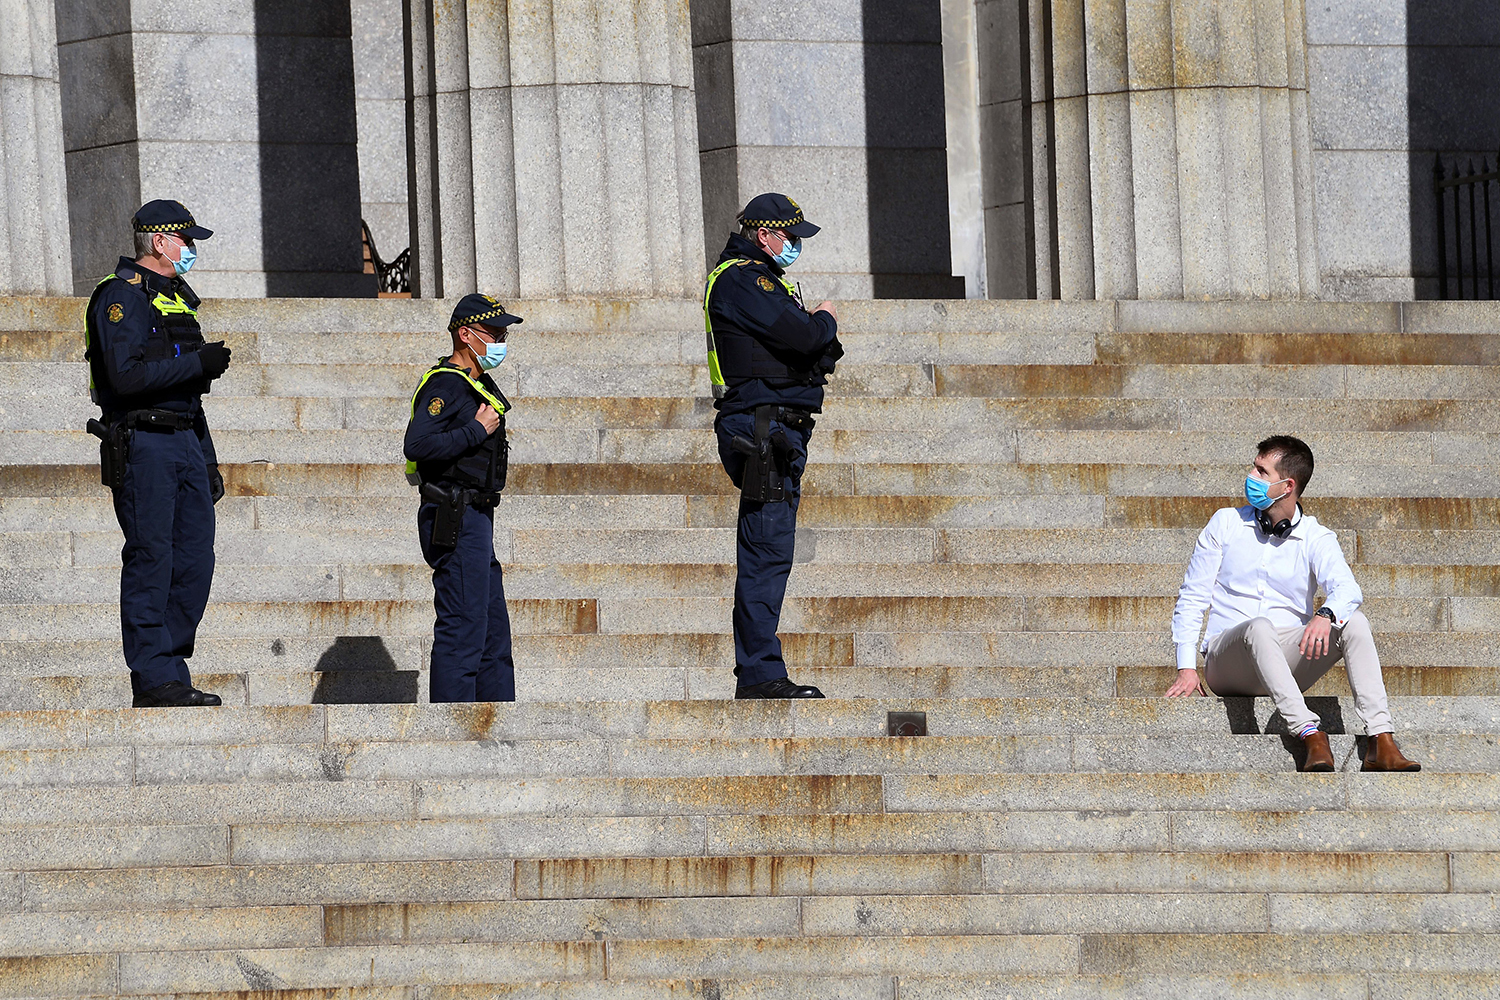 In the midst of its strict coronavirus lockdown, officers speak to a man sitting on the steps of the Shrine of Remembrance in Melbourne, Australia, on July 31. WILLIAM WEST/AFP via Getty Images